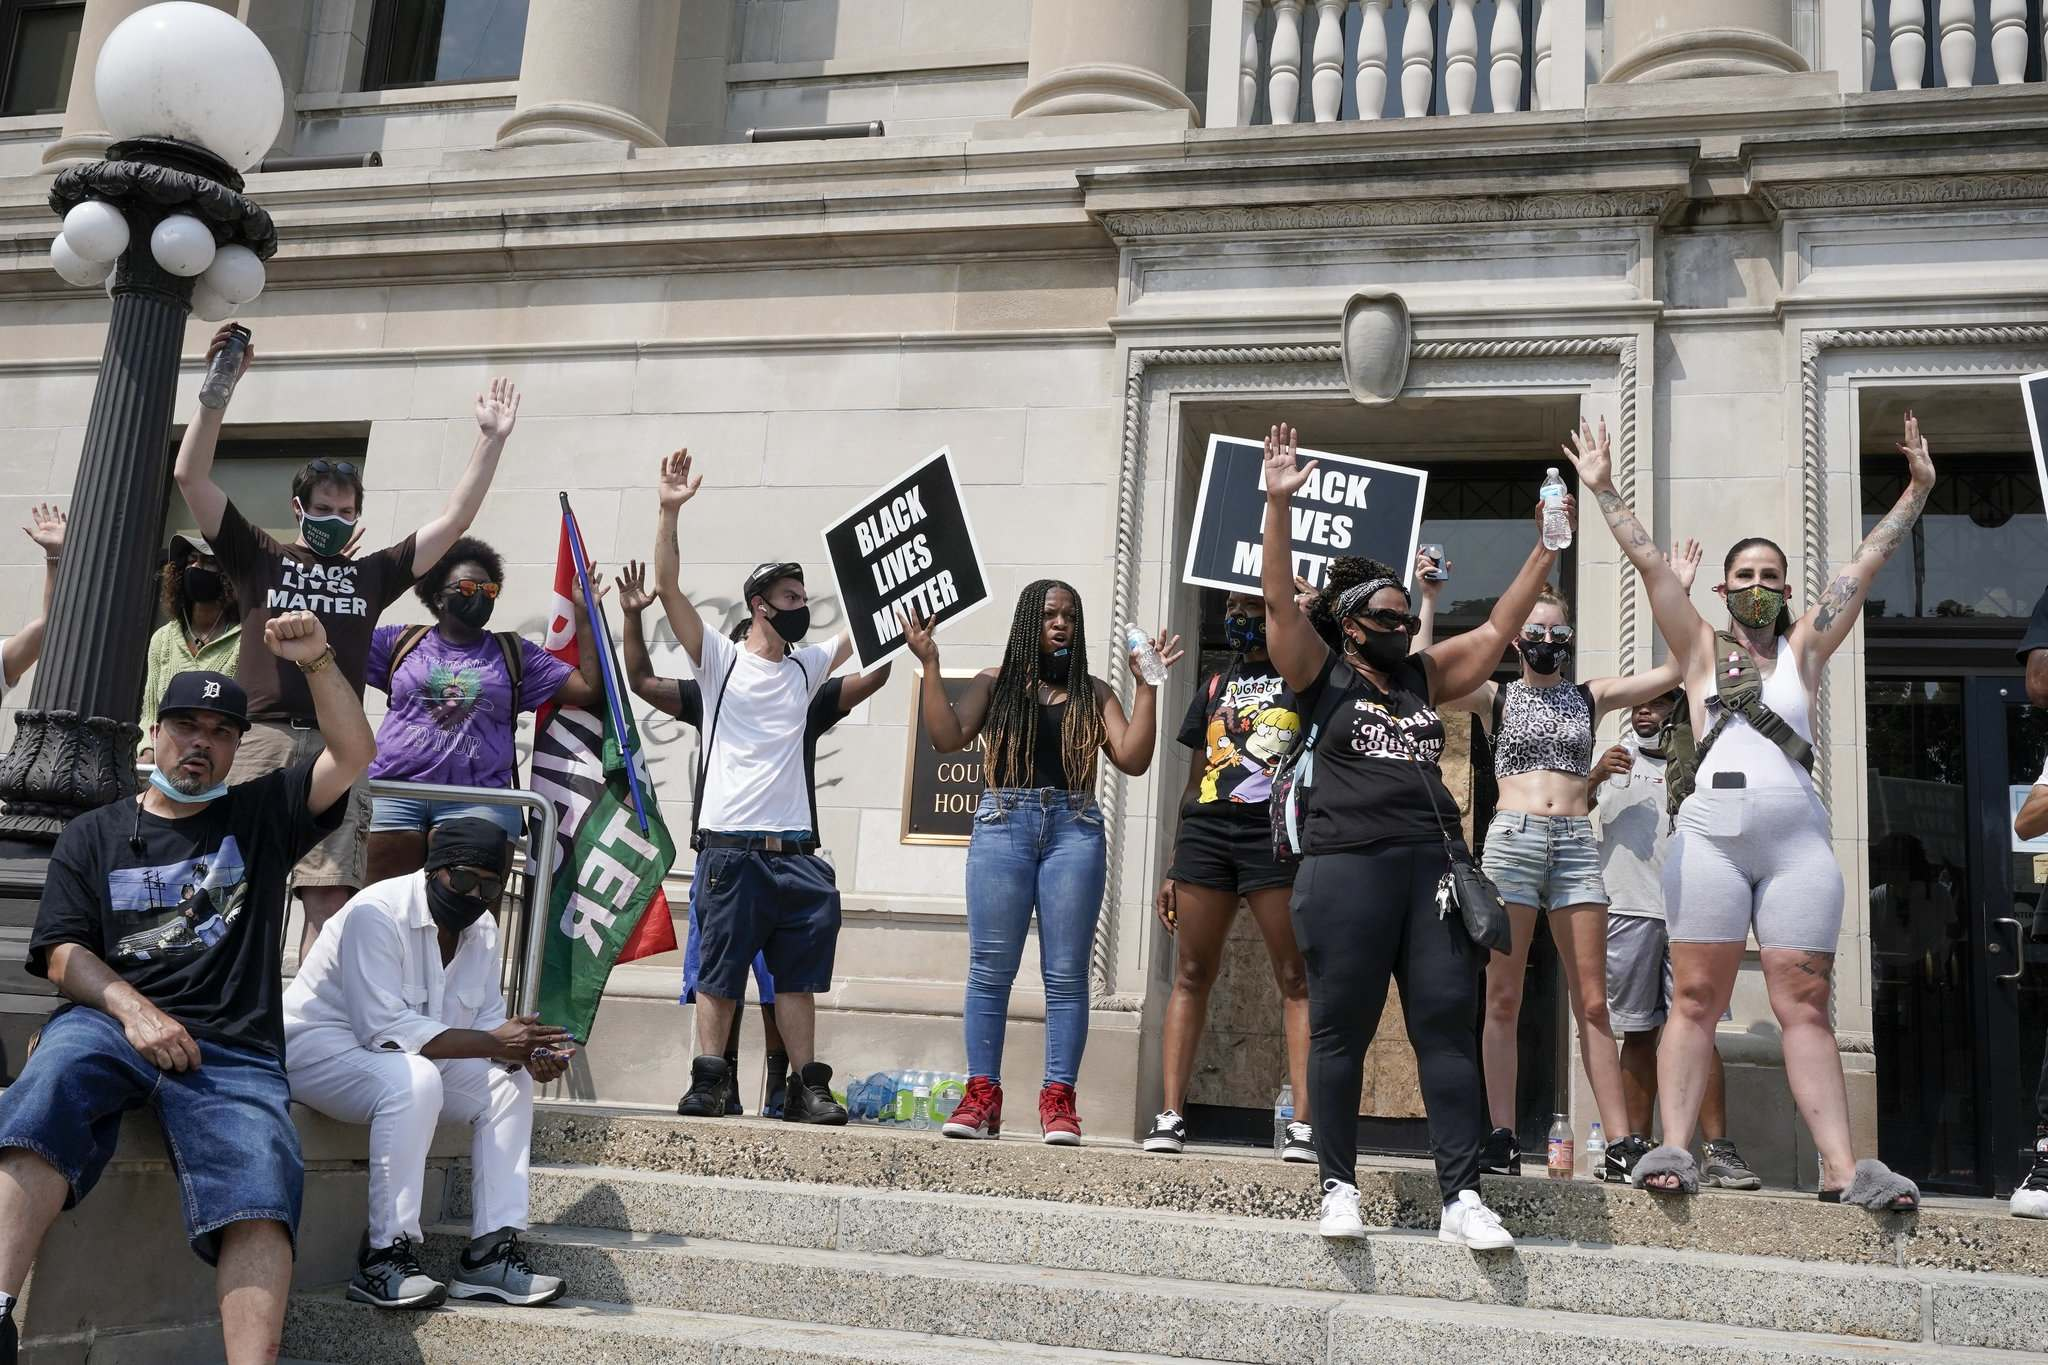 Morry Gash / The Associated Press</p><p>A small group of Black Lives Matter protesters hold a rally on the steps of the Kenosha County courthouse Monday, Aug. 24, 2020, in Kenosha, Wis. Kenosha police shot a man Sunday evening, setting off unrest in the city after a video appeared to show the officer firing several shots at close range into the man's back.</p>